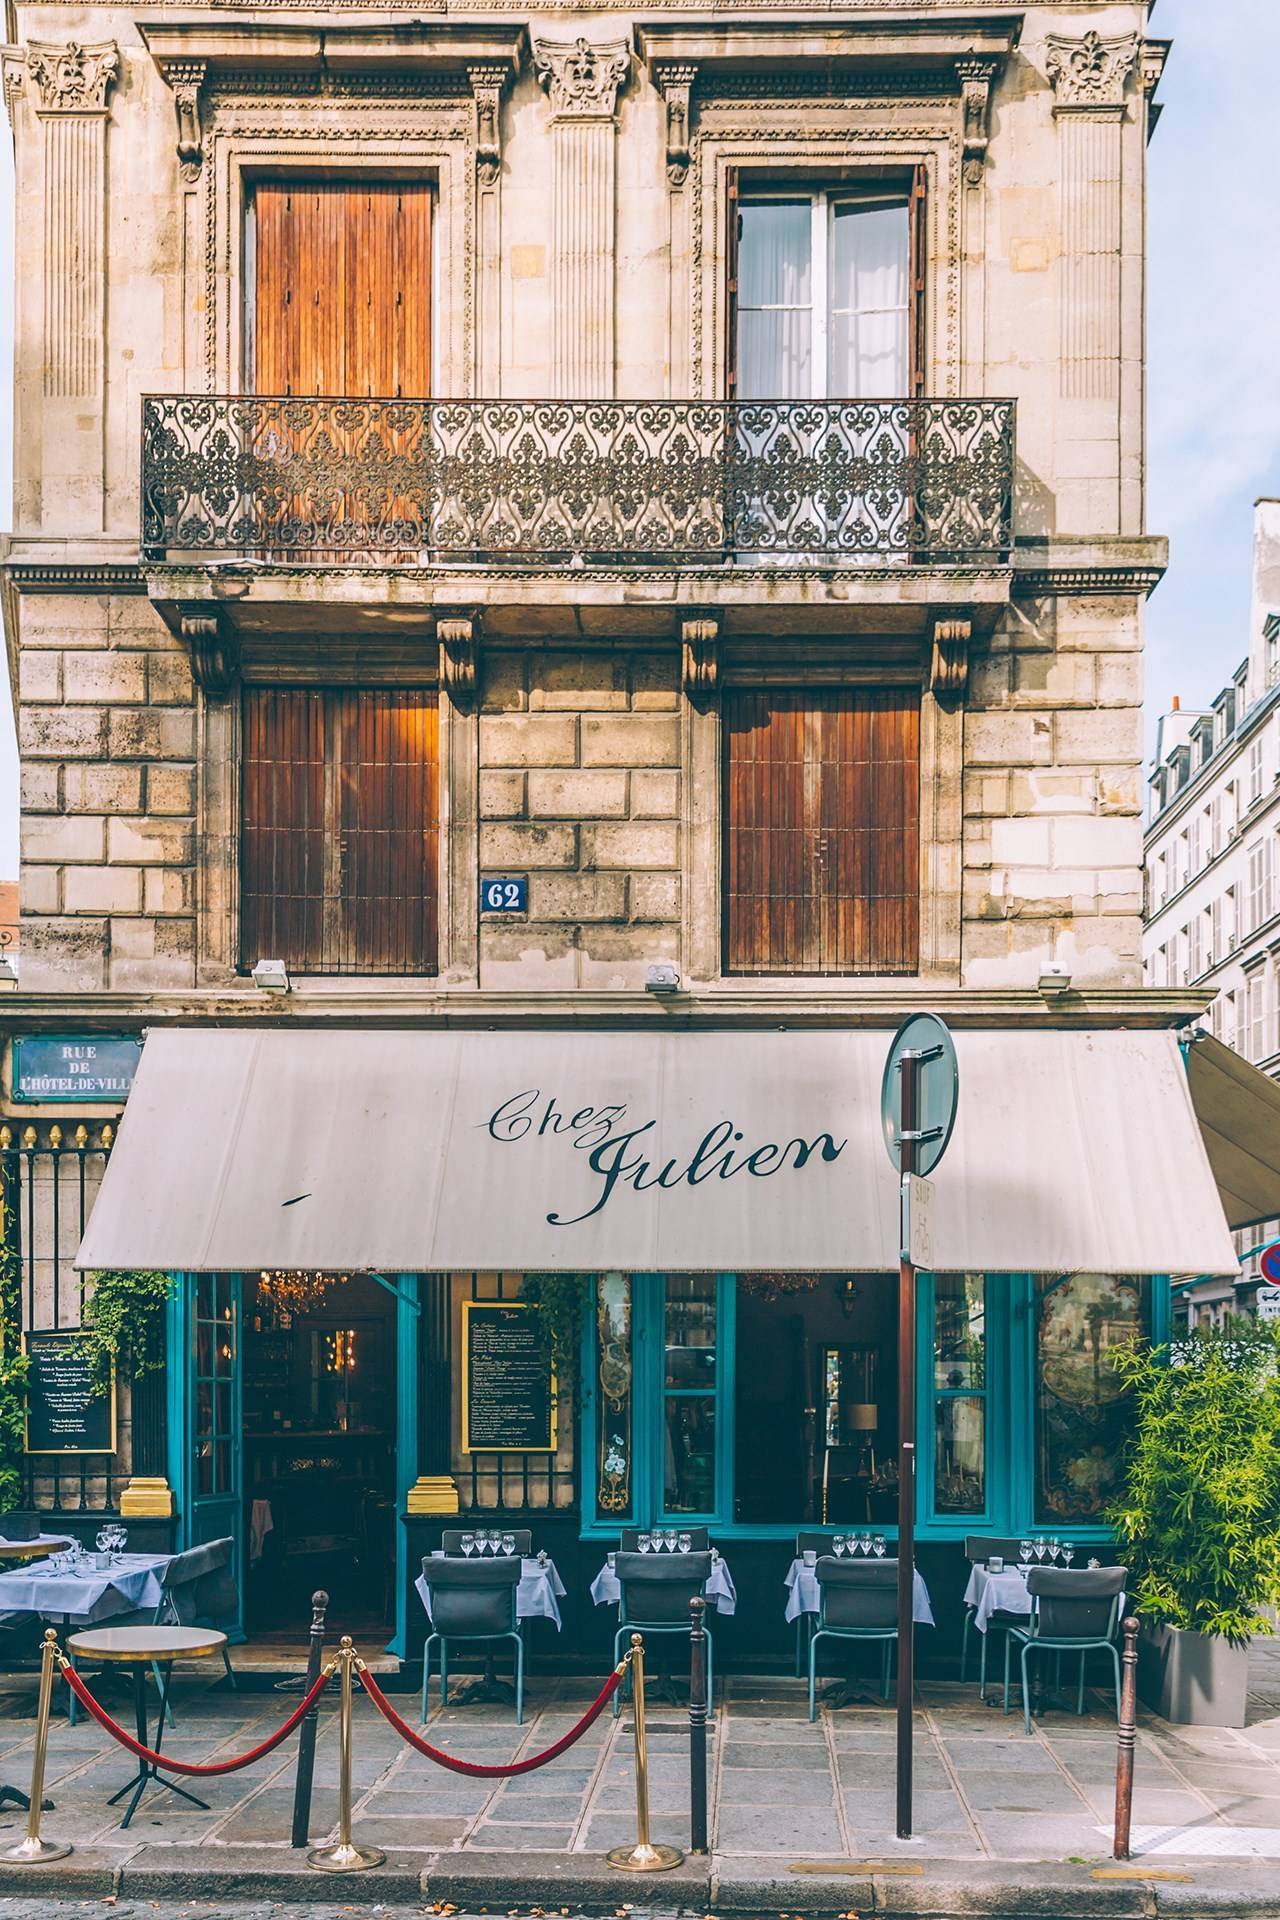 The 22 best photo locations in Paris - where to take the